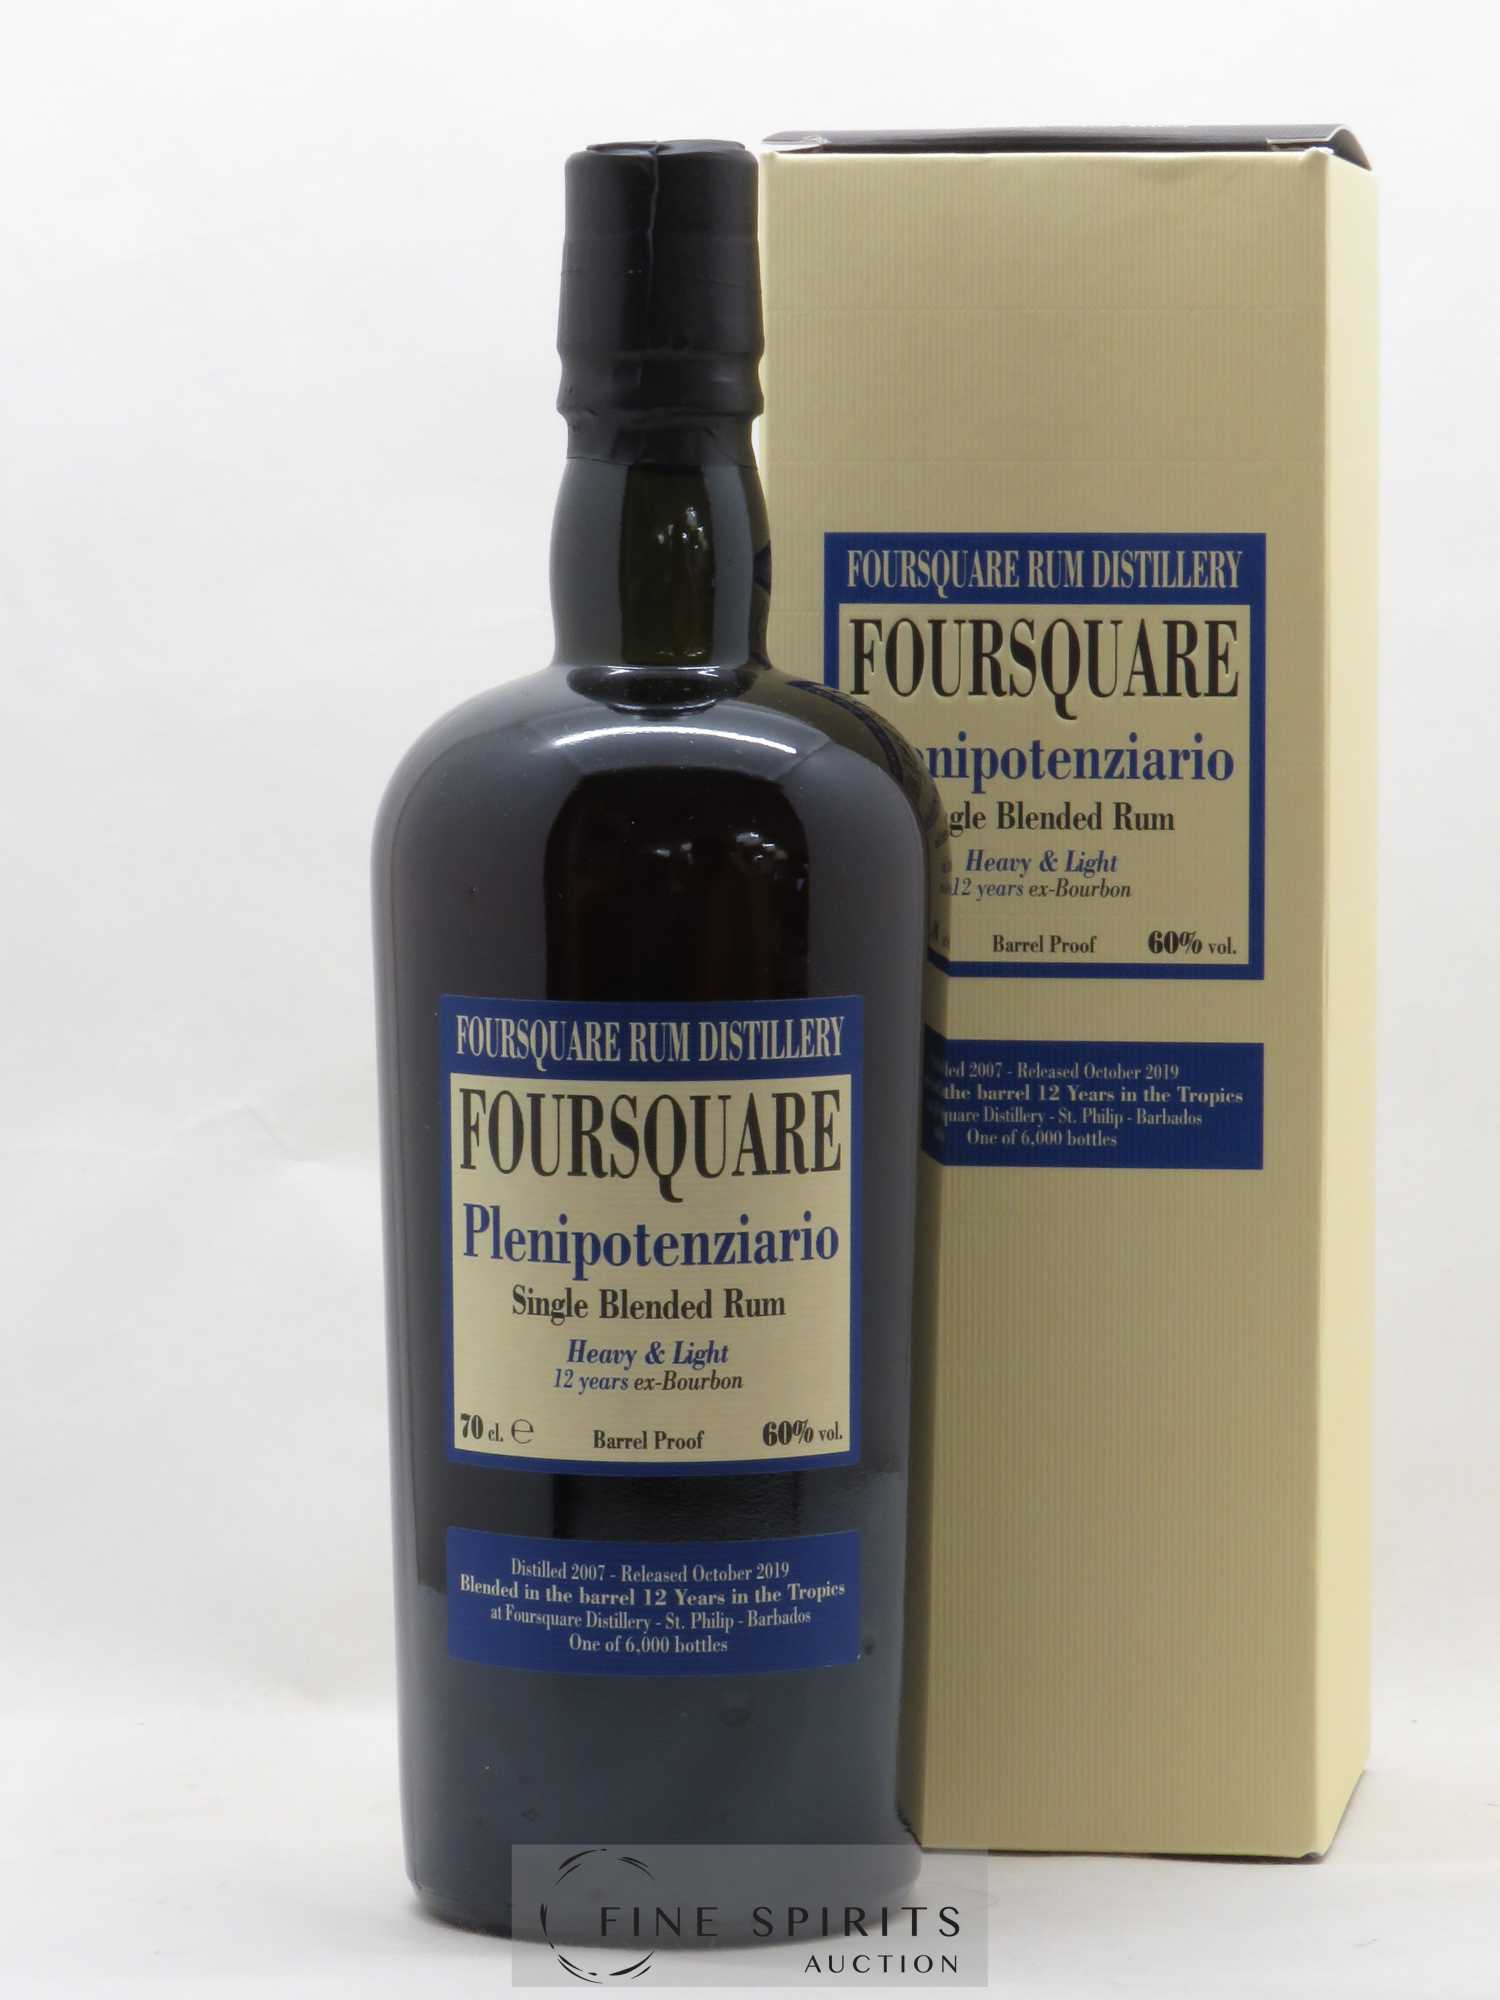 Rhum Foursquare 12 years 2007 Of. Plenipotenziario   - Lot de 1 Bouteille